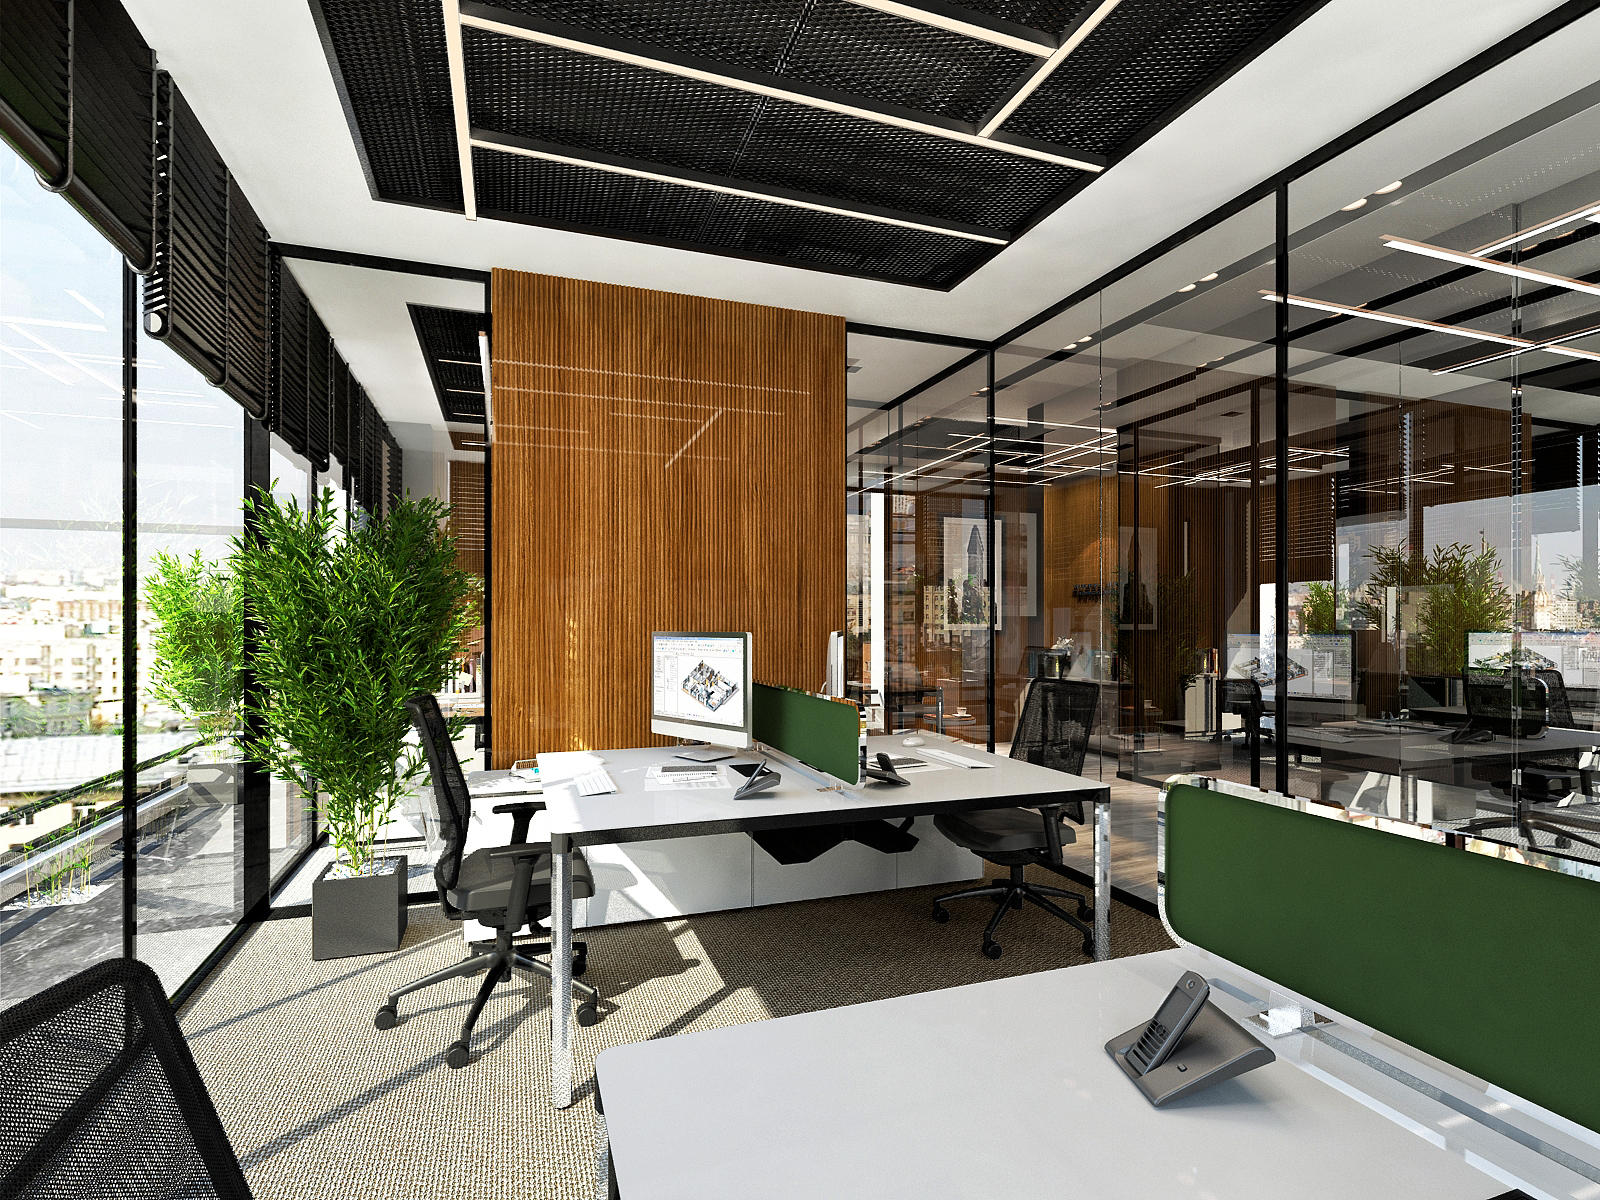 We provide realistic 3d office space rendering,  3d workspace visualization services in London